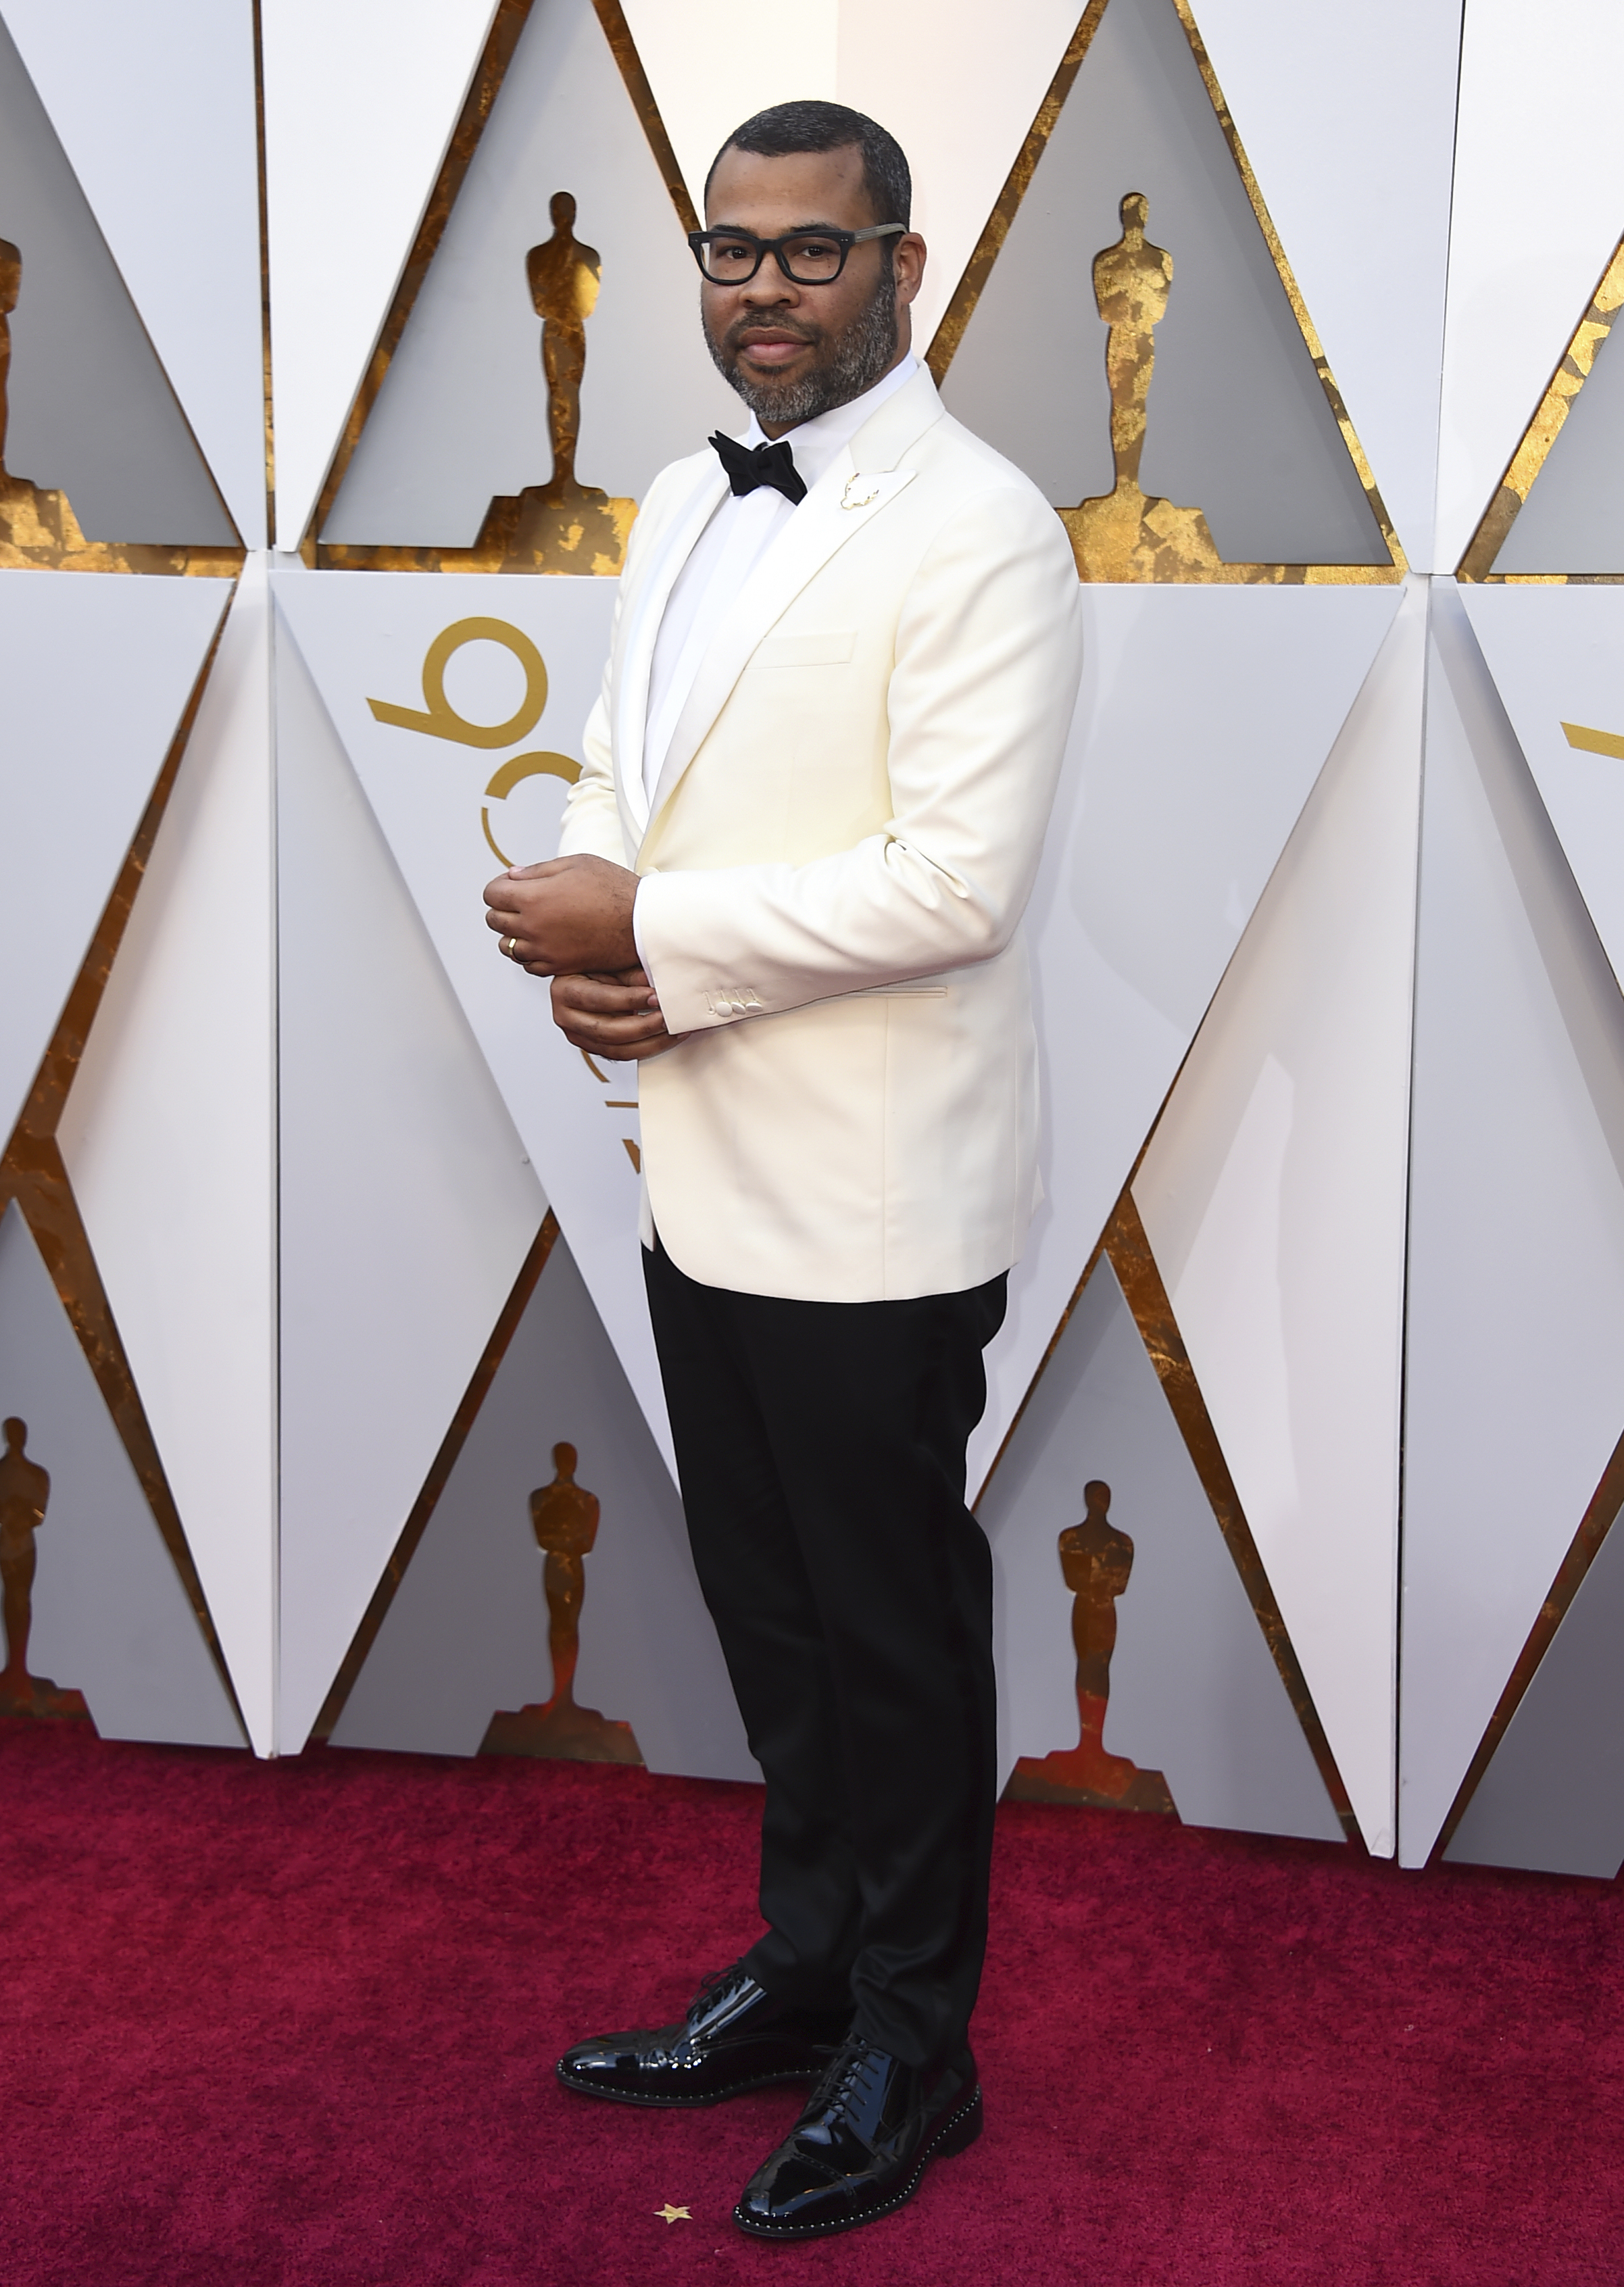 "<div class=""meta image-caption""><div class=""origin-logo origin-image none""><span>none</span></div><span class=""caption-text"">Jordan Peele, nominated both for writing and directing ''Get Out,'' arrives at the Oscars on Sunday, March 4, 2018, at the Dolby Theatre in Los Angeles. (Jordan Strauss/Invision/AP)</span></div>"